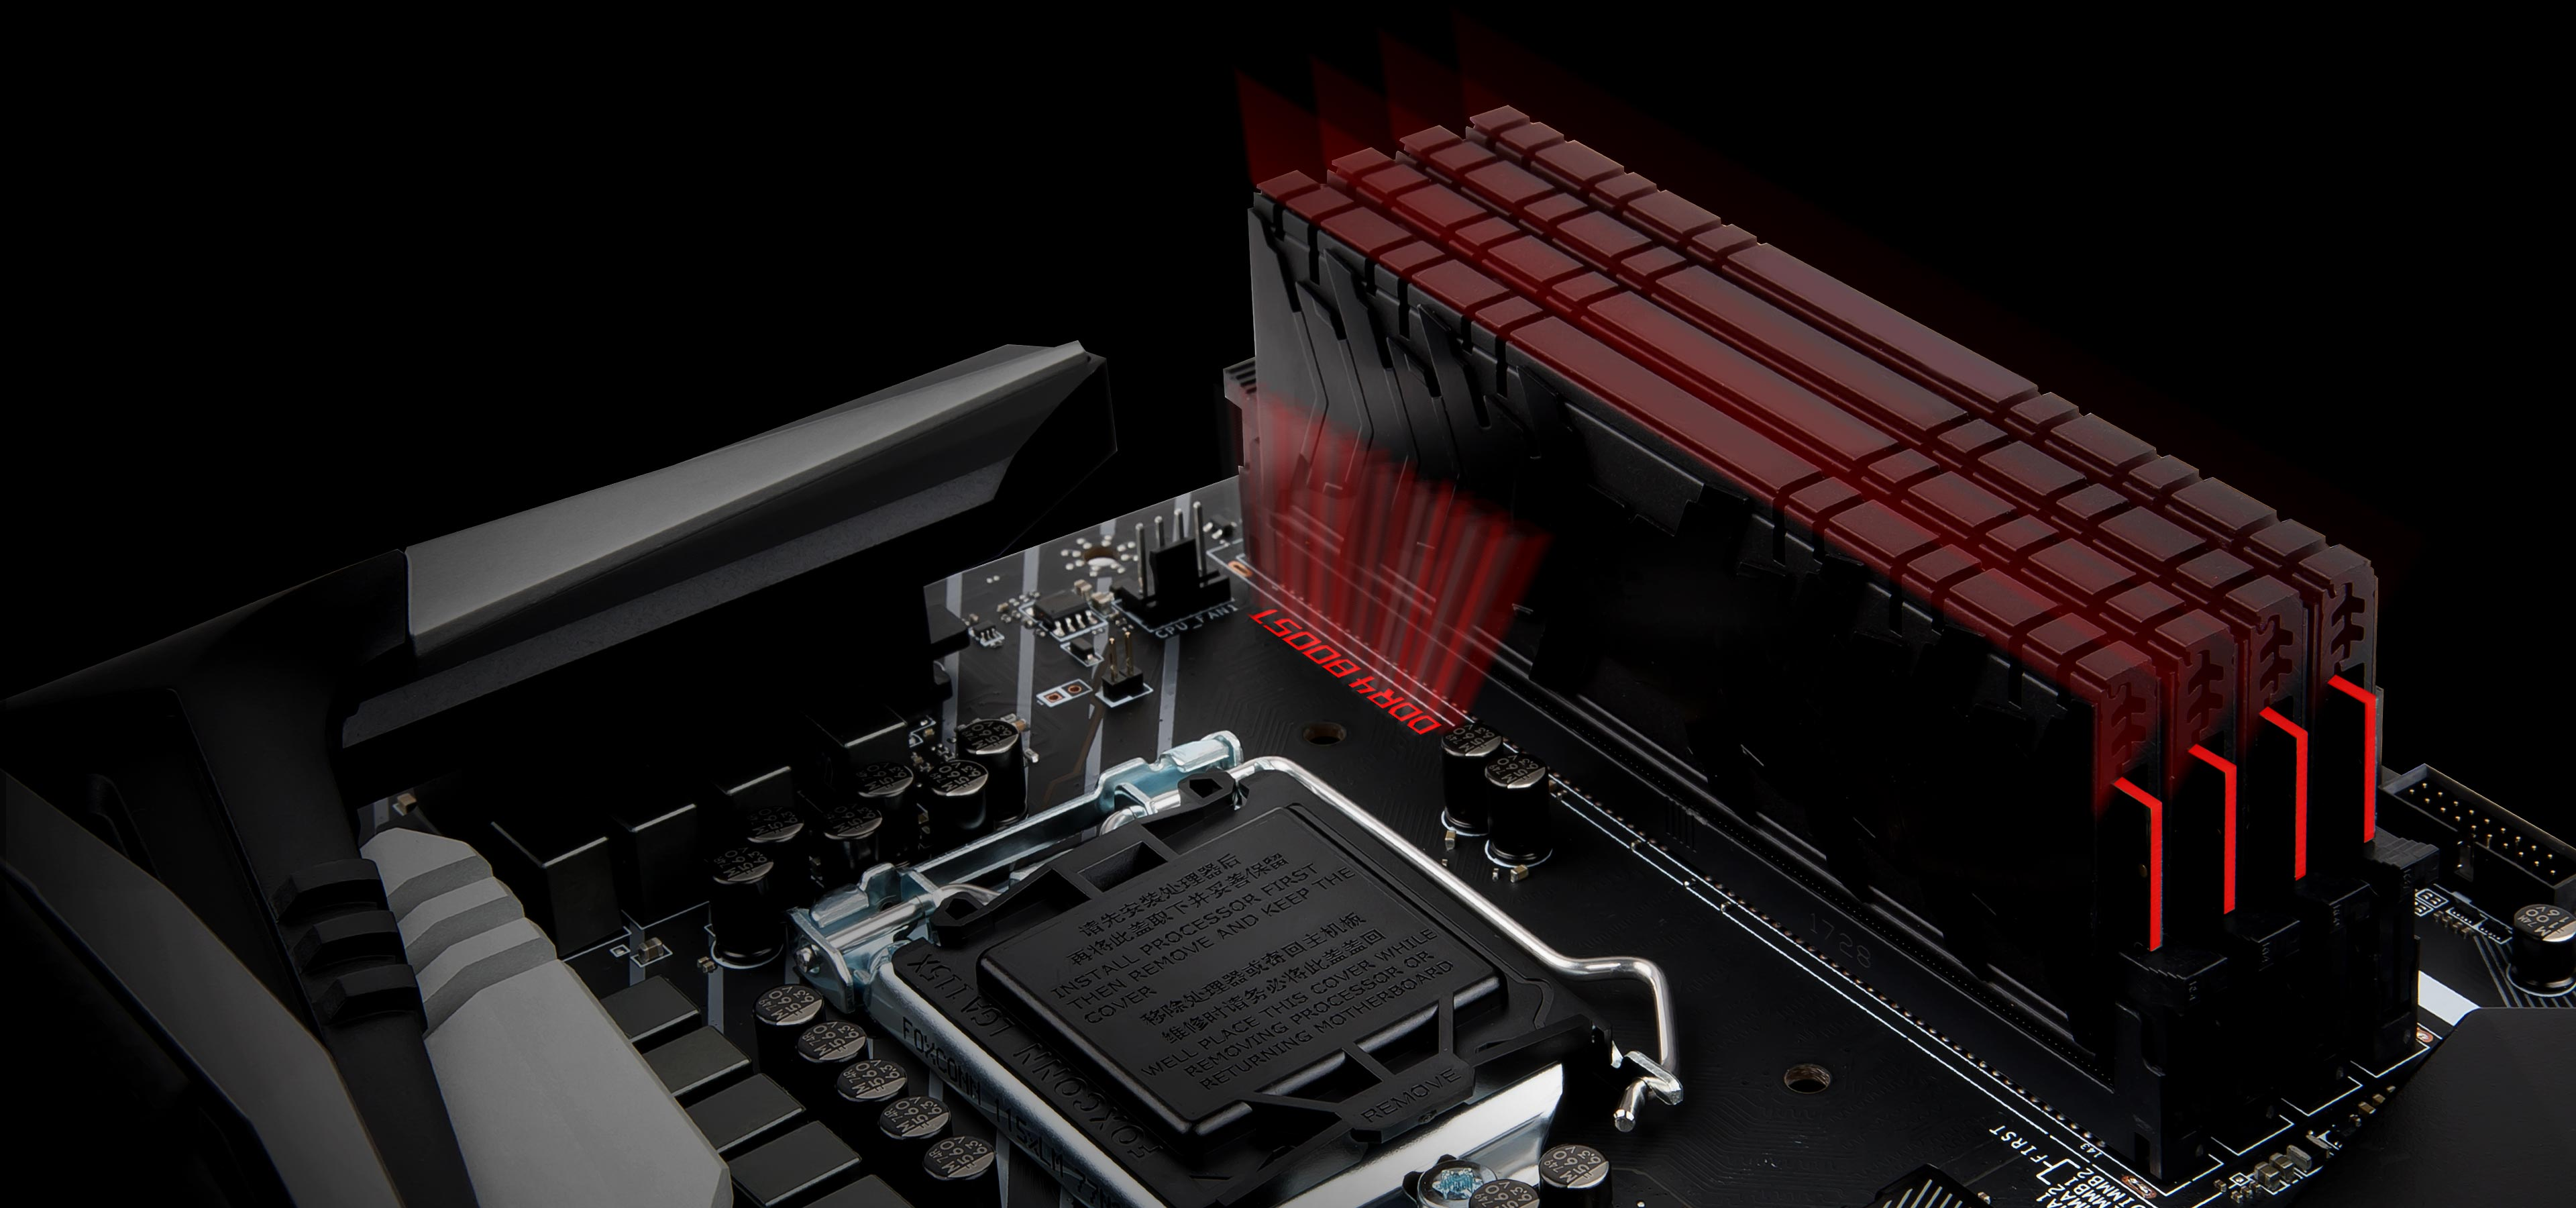 Z370 GAMING PRO CARBON   Motherboard - The world leader in